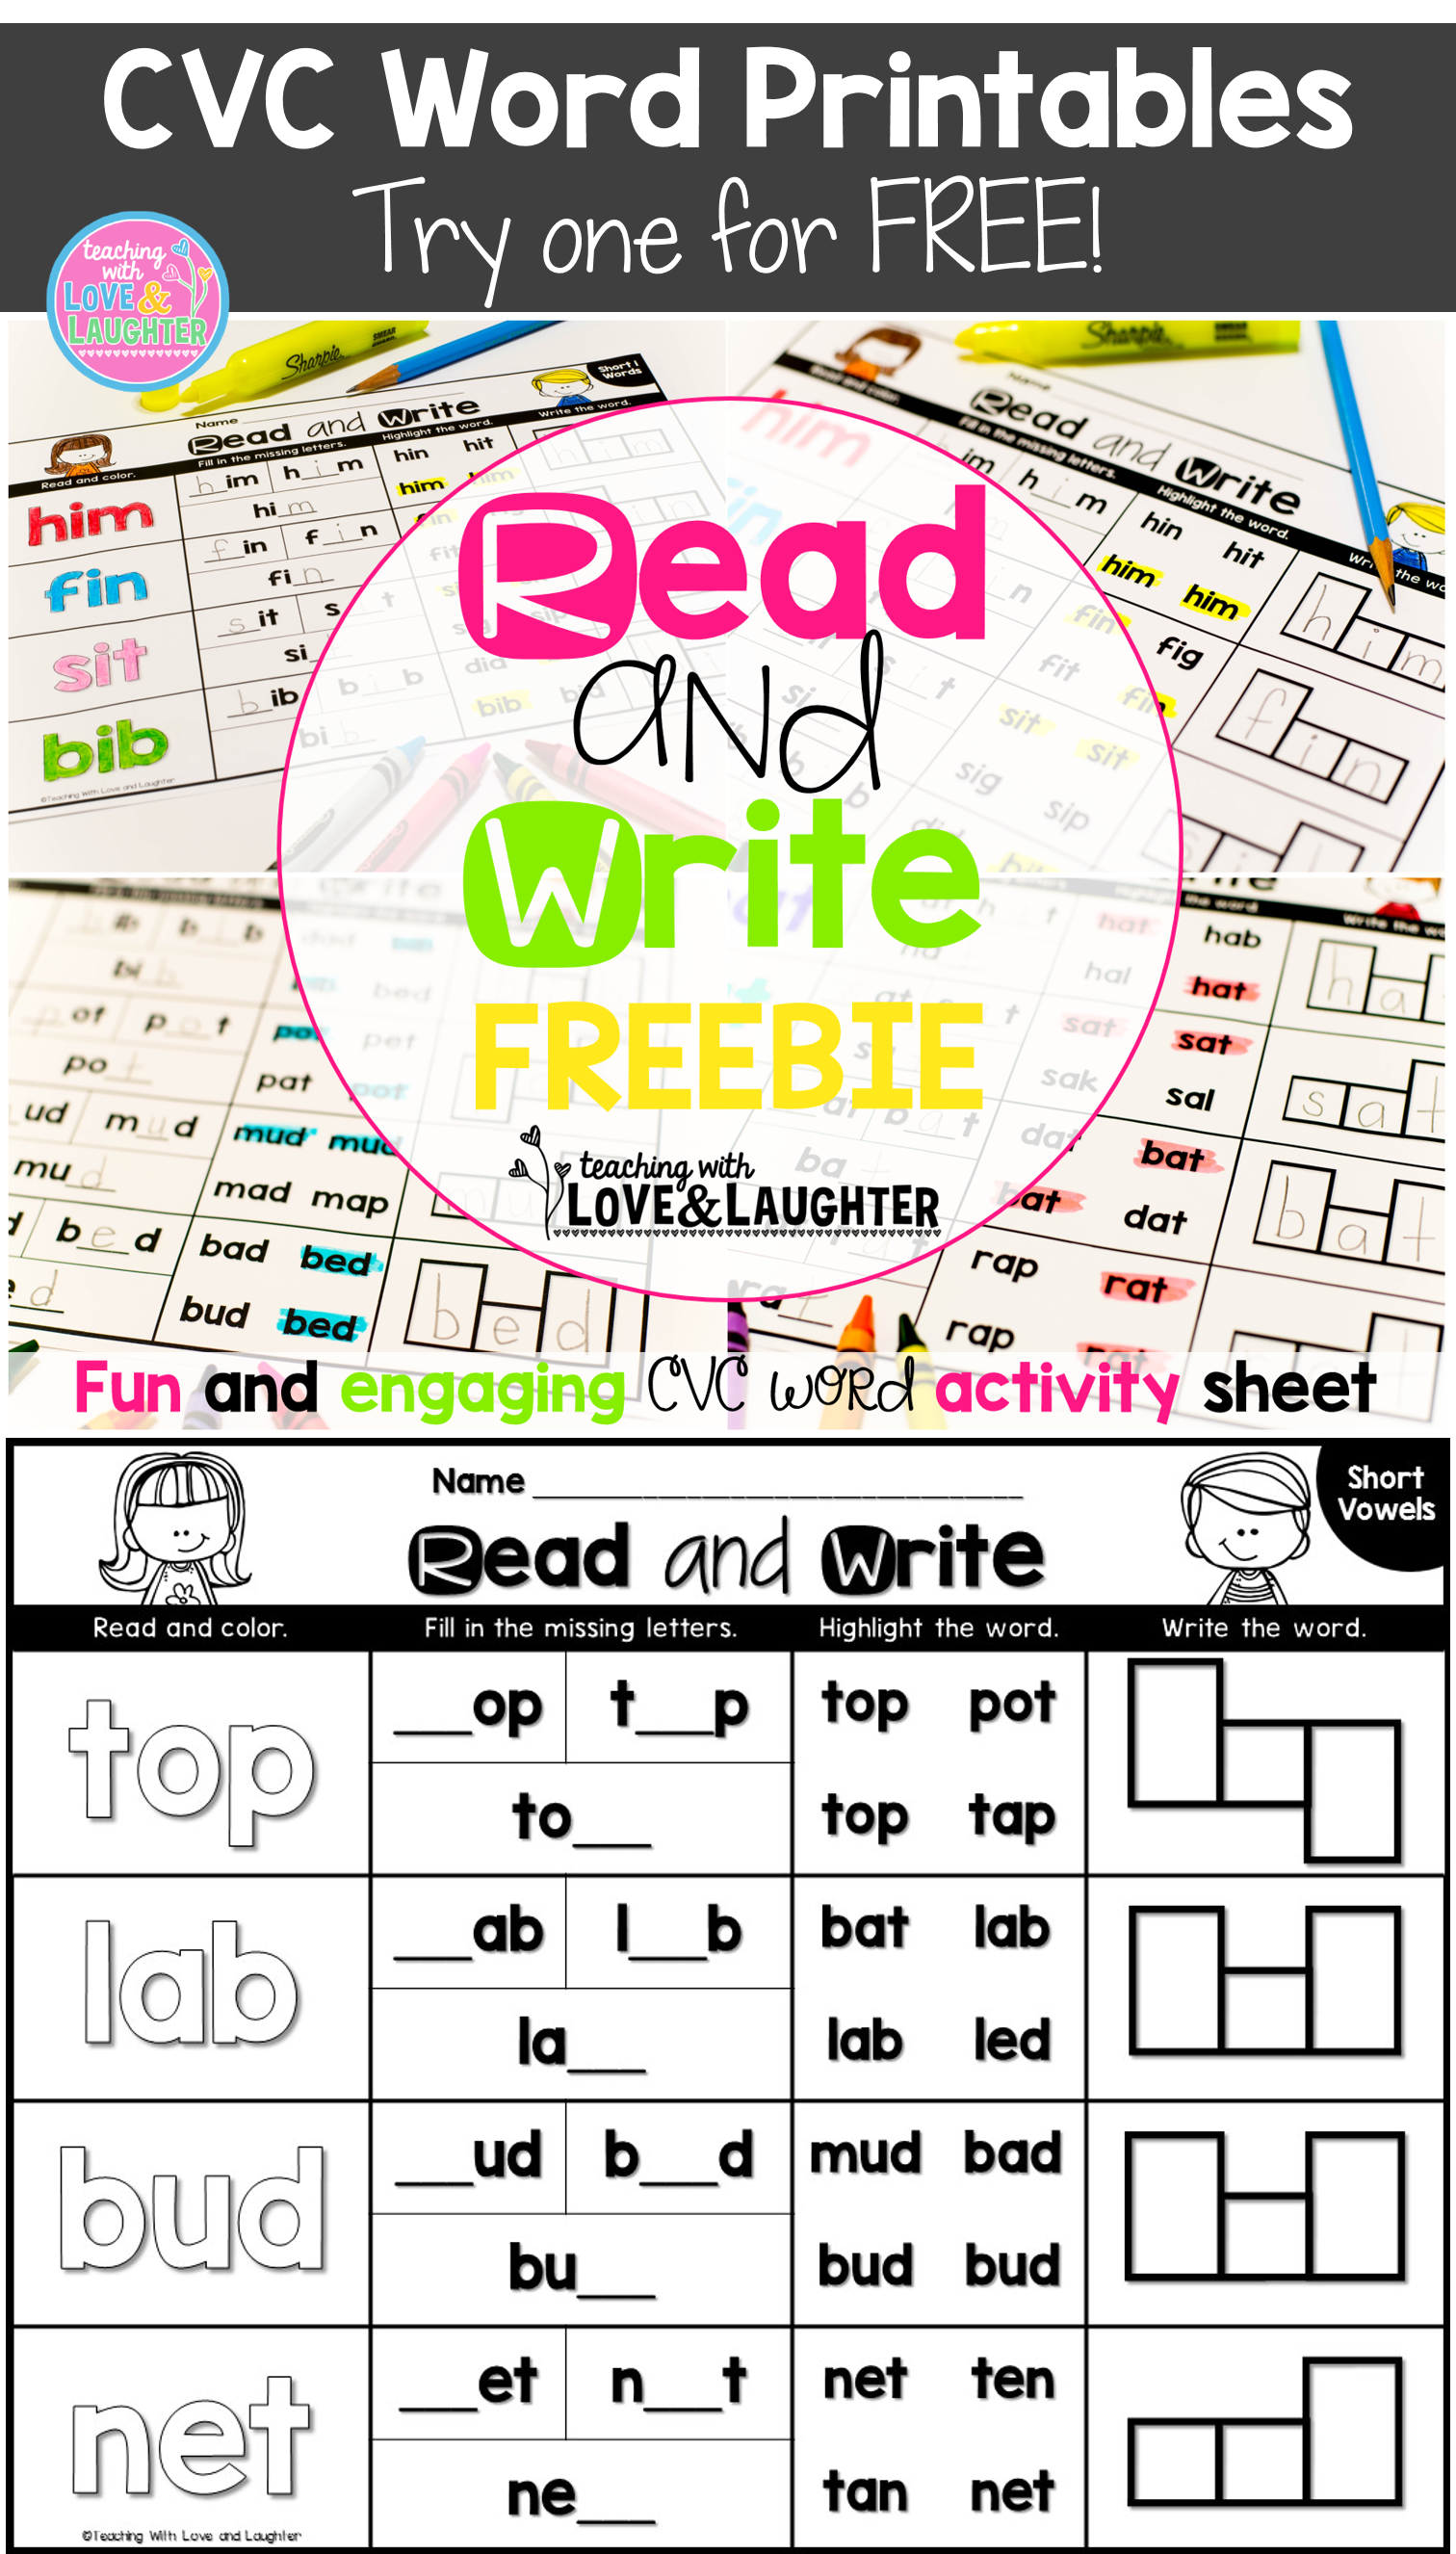 Try A Free Cvc Word Activity Sheet